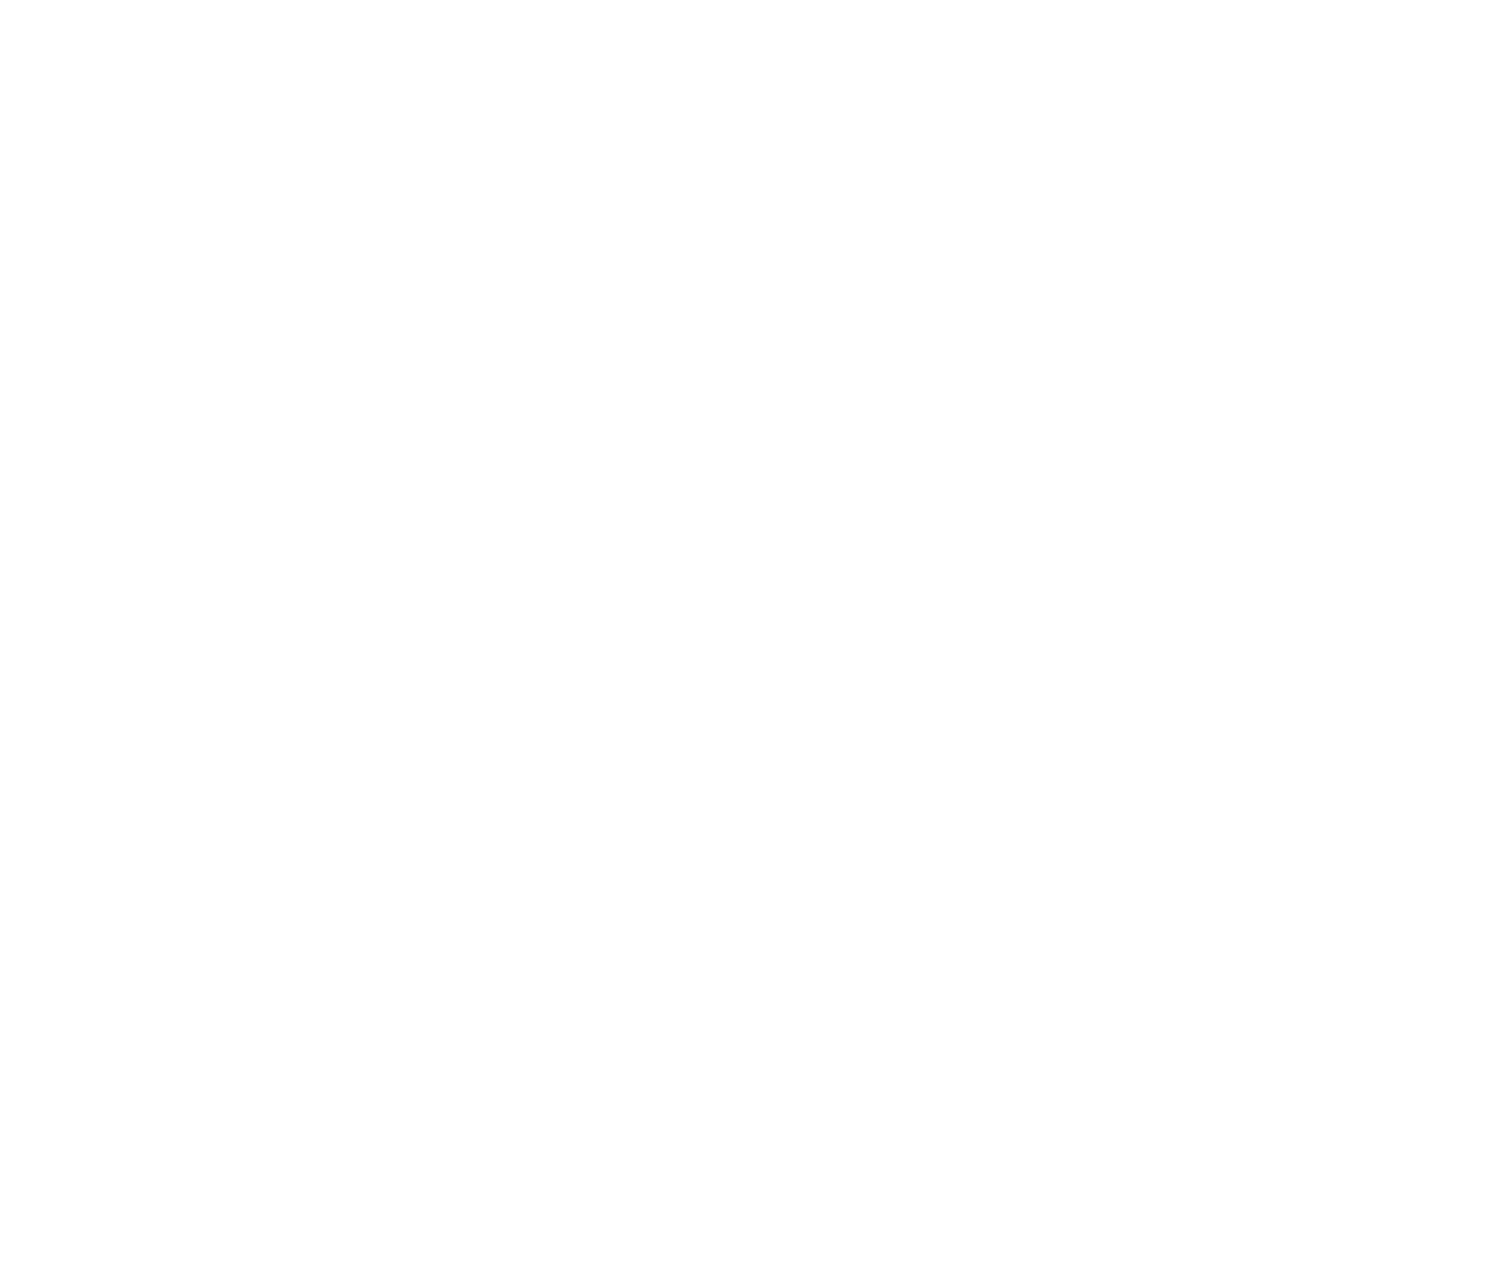 PHILLIPS ENTERPRISES